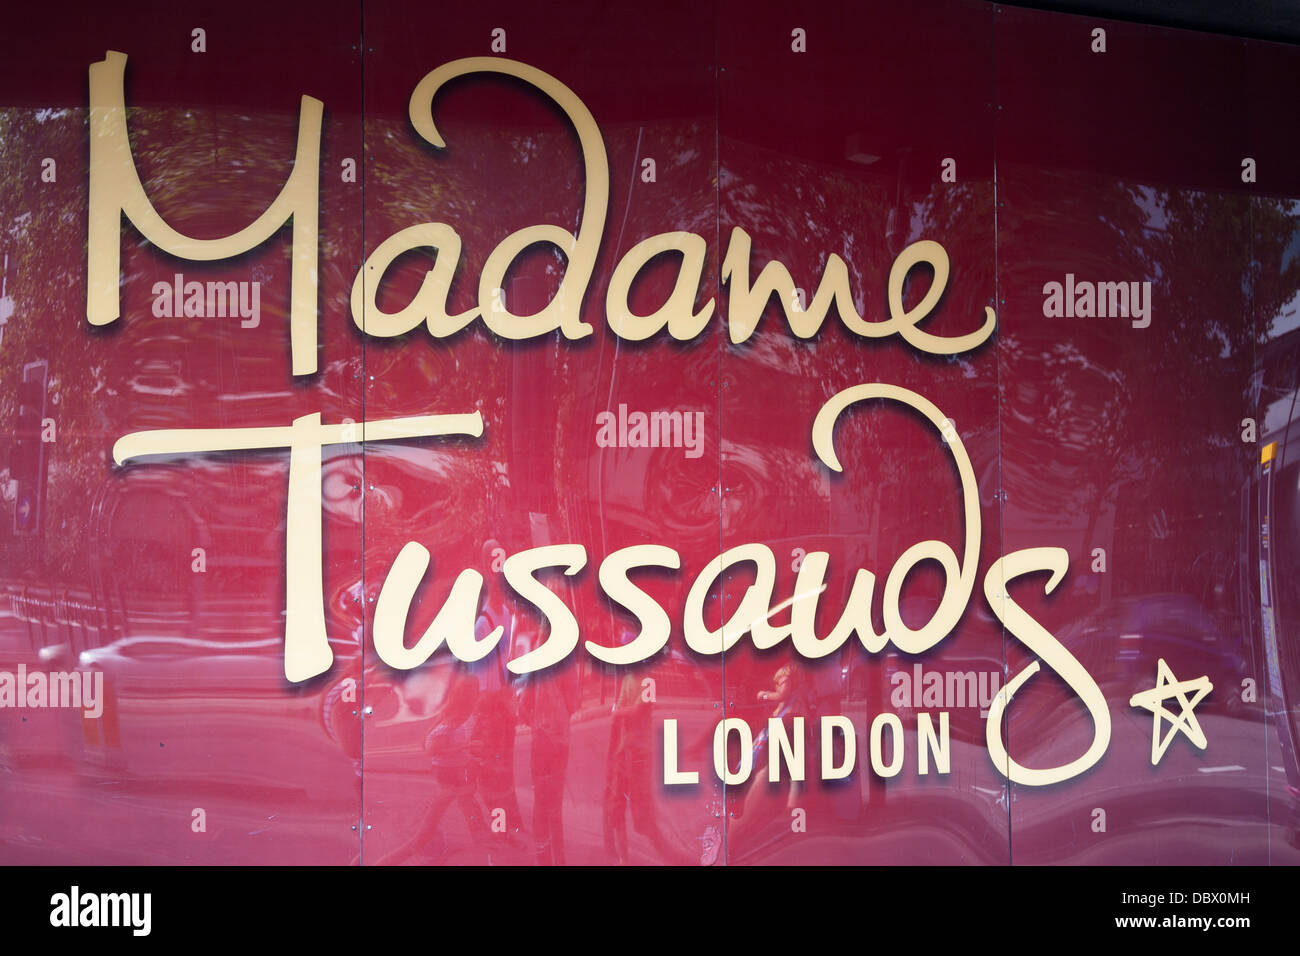 Madame Tussands Wax Works Museum, London; England; UK; - Stock Image